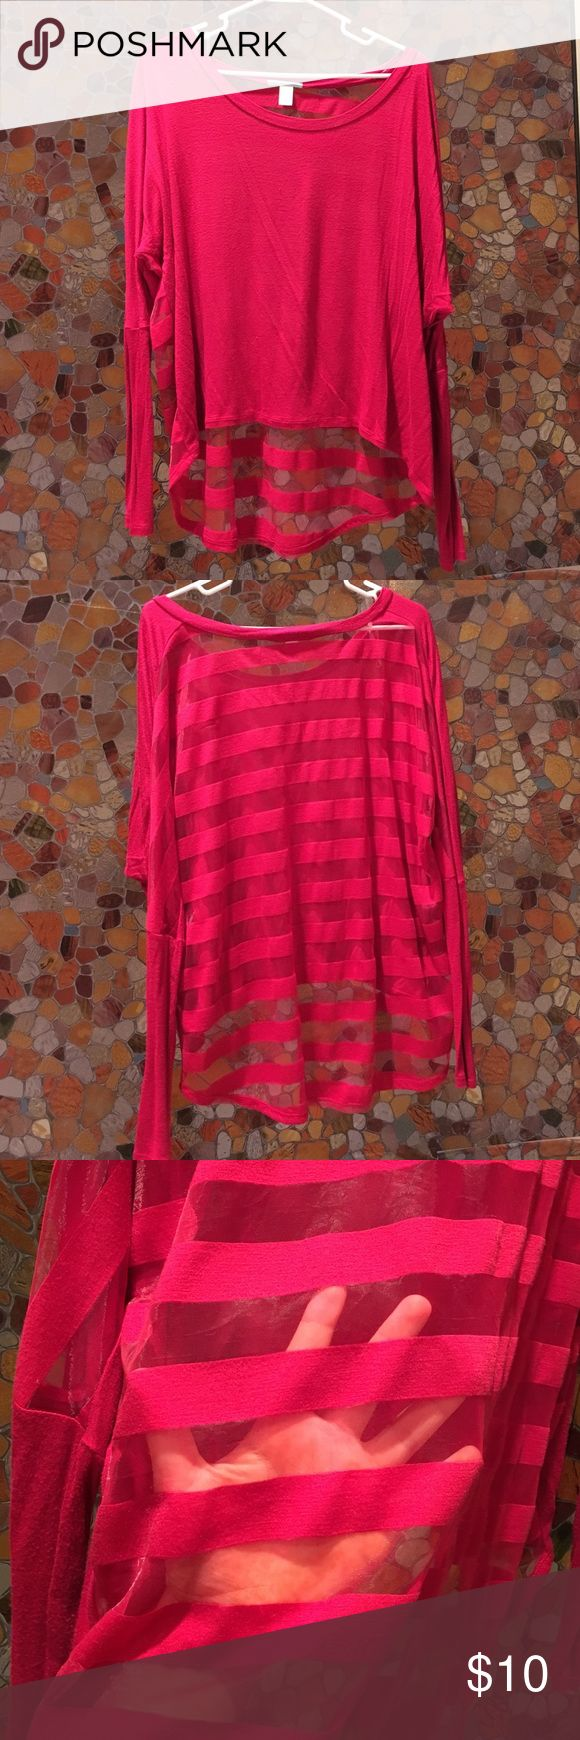 Hot pink top Top is hot pink with striped mesh back. Material is super soft and high low. Tops Blouses